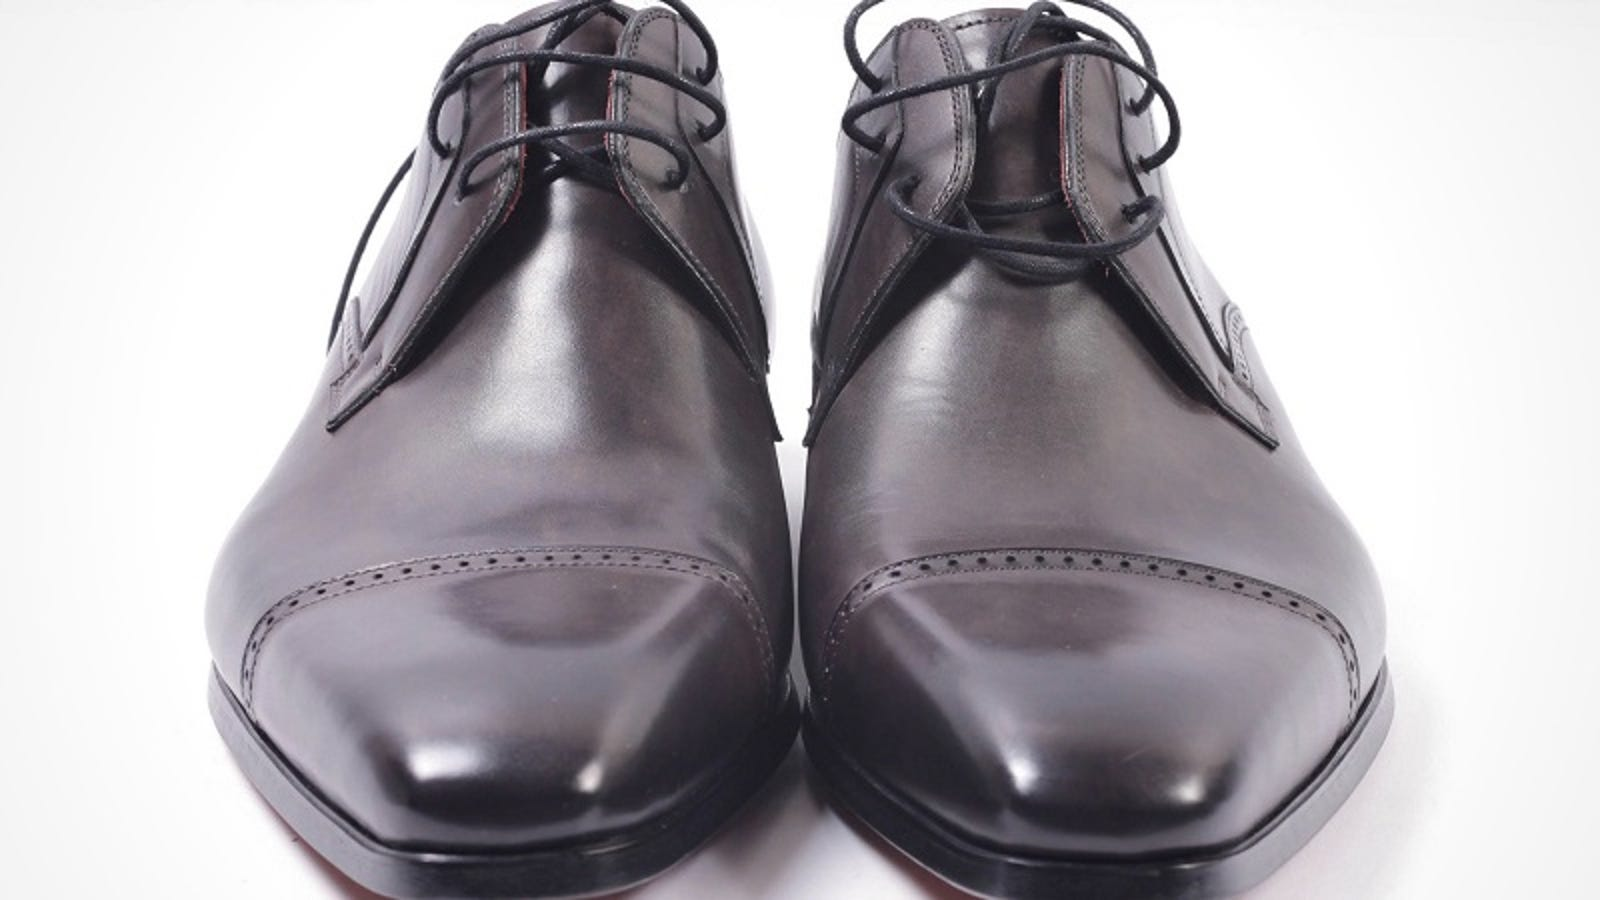 Shoes Made in the USA | Americans Working